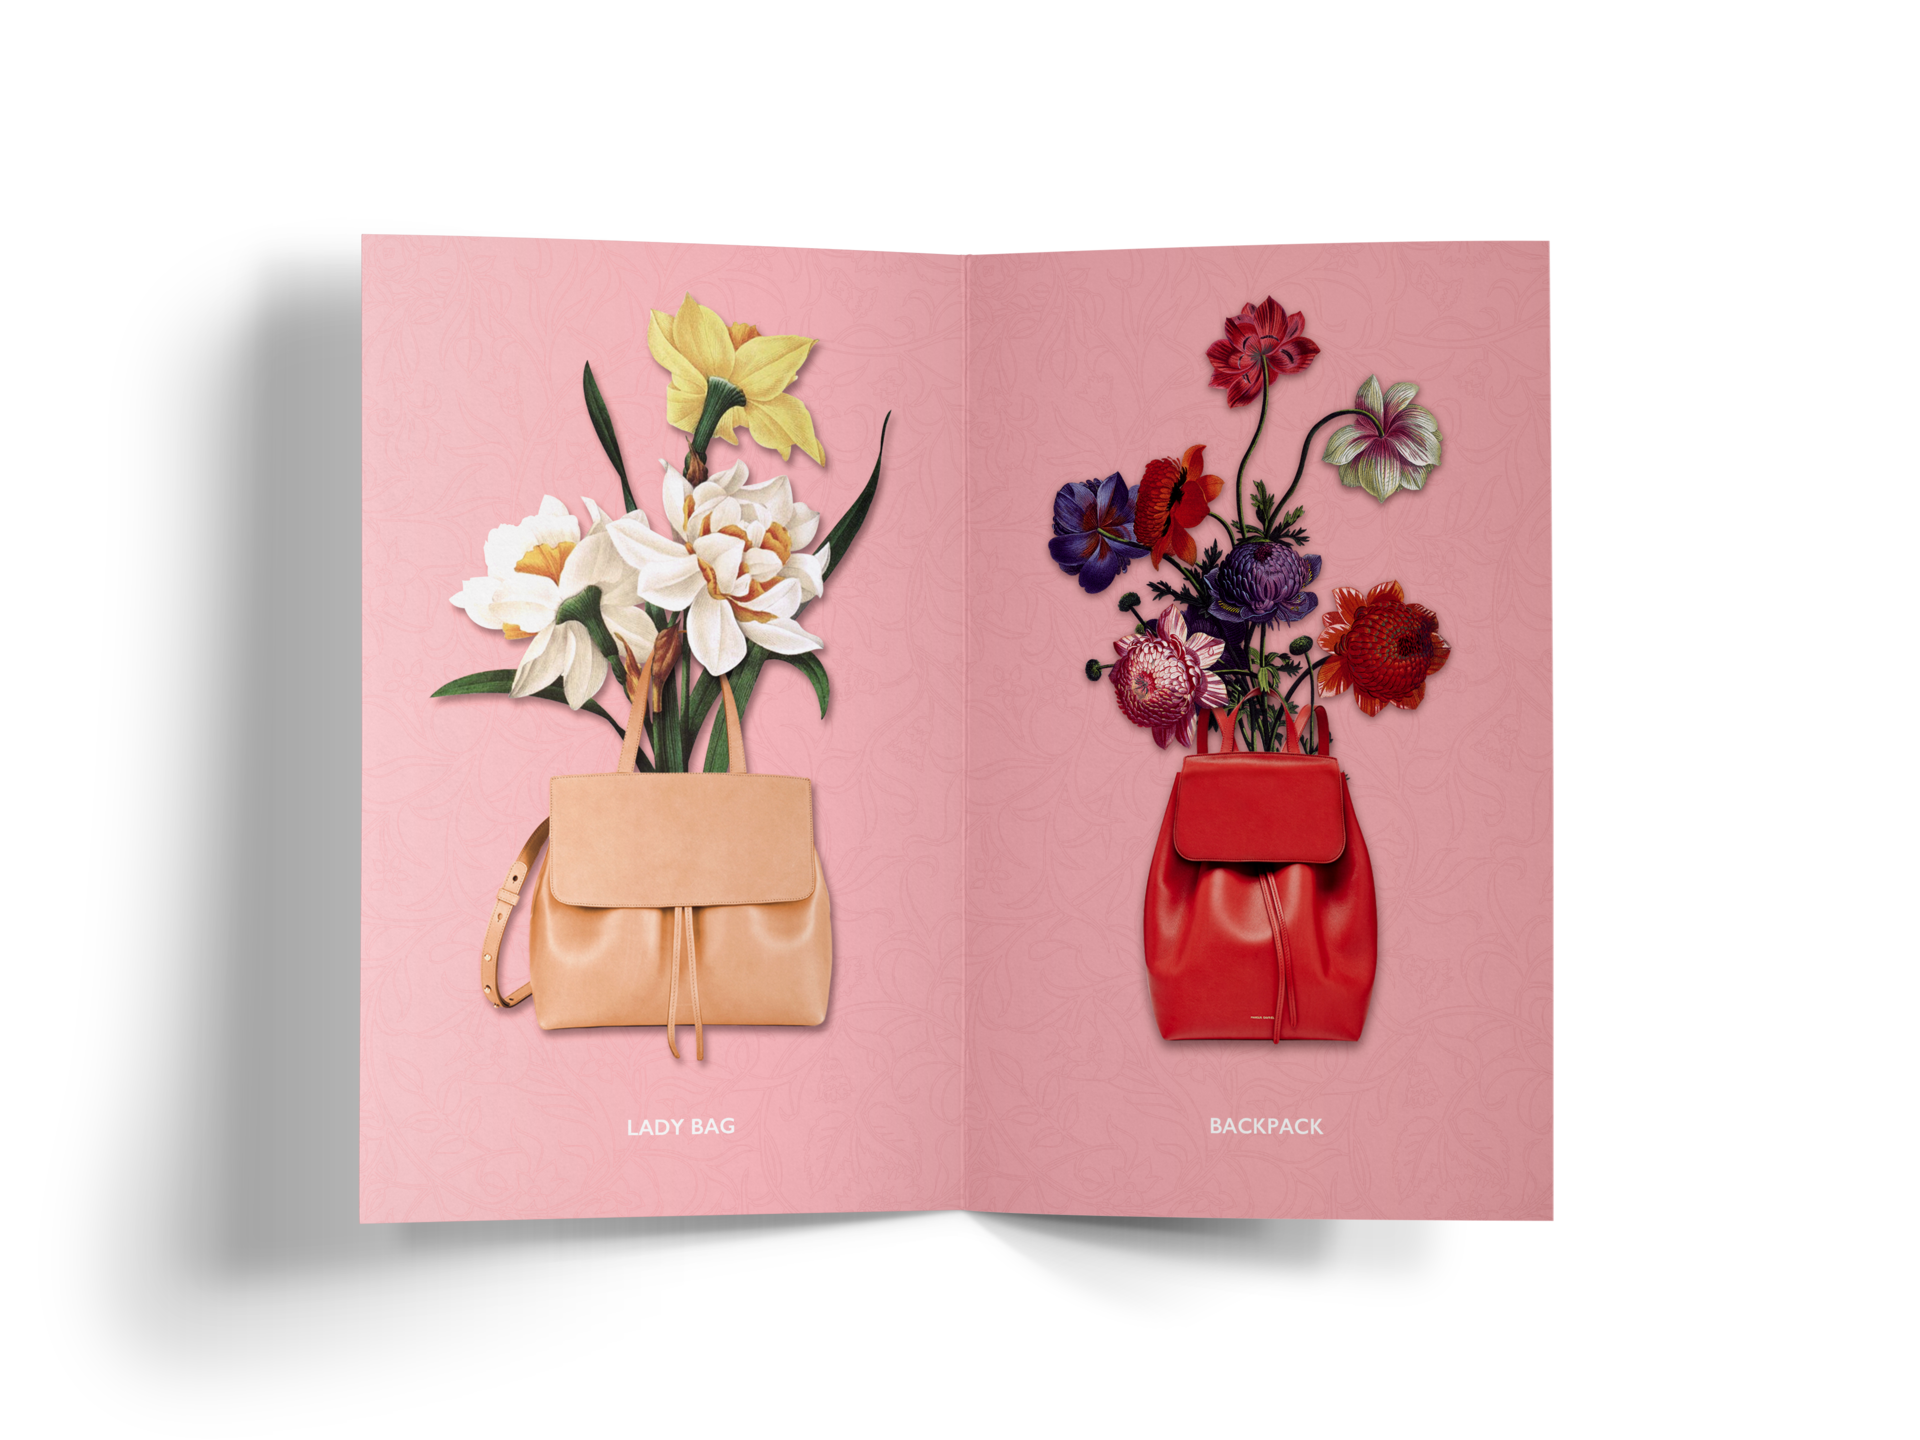 MANSUR GAVRIEL / Bag Collection